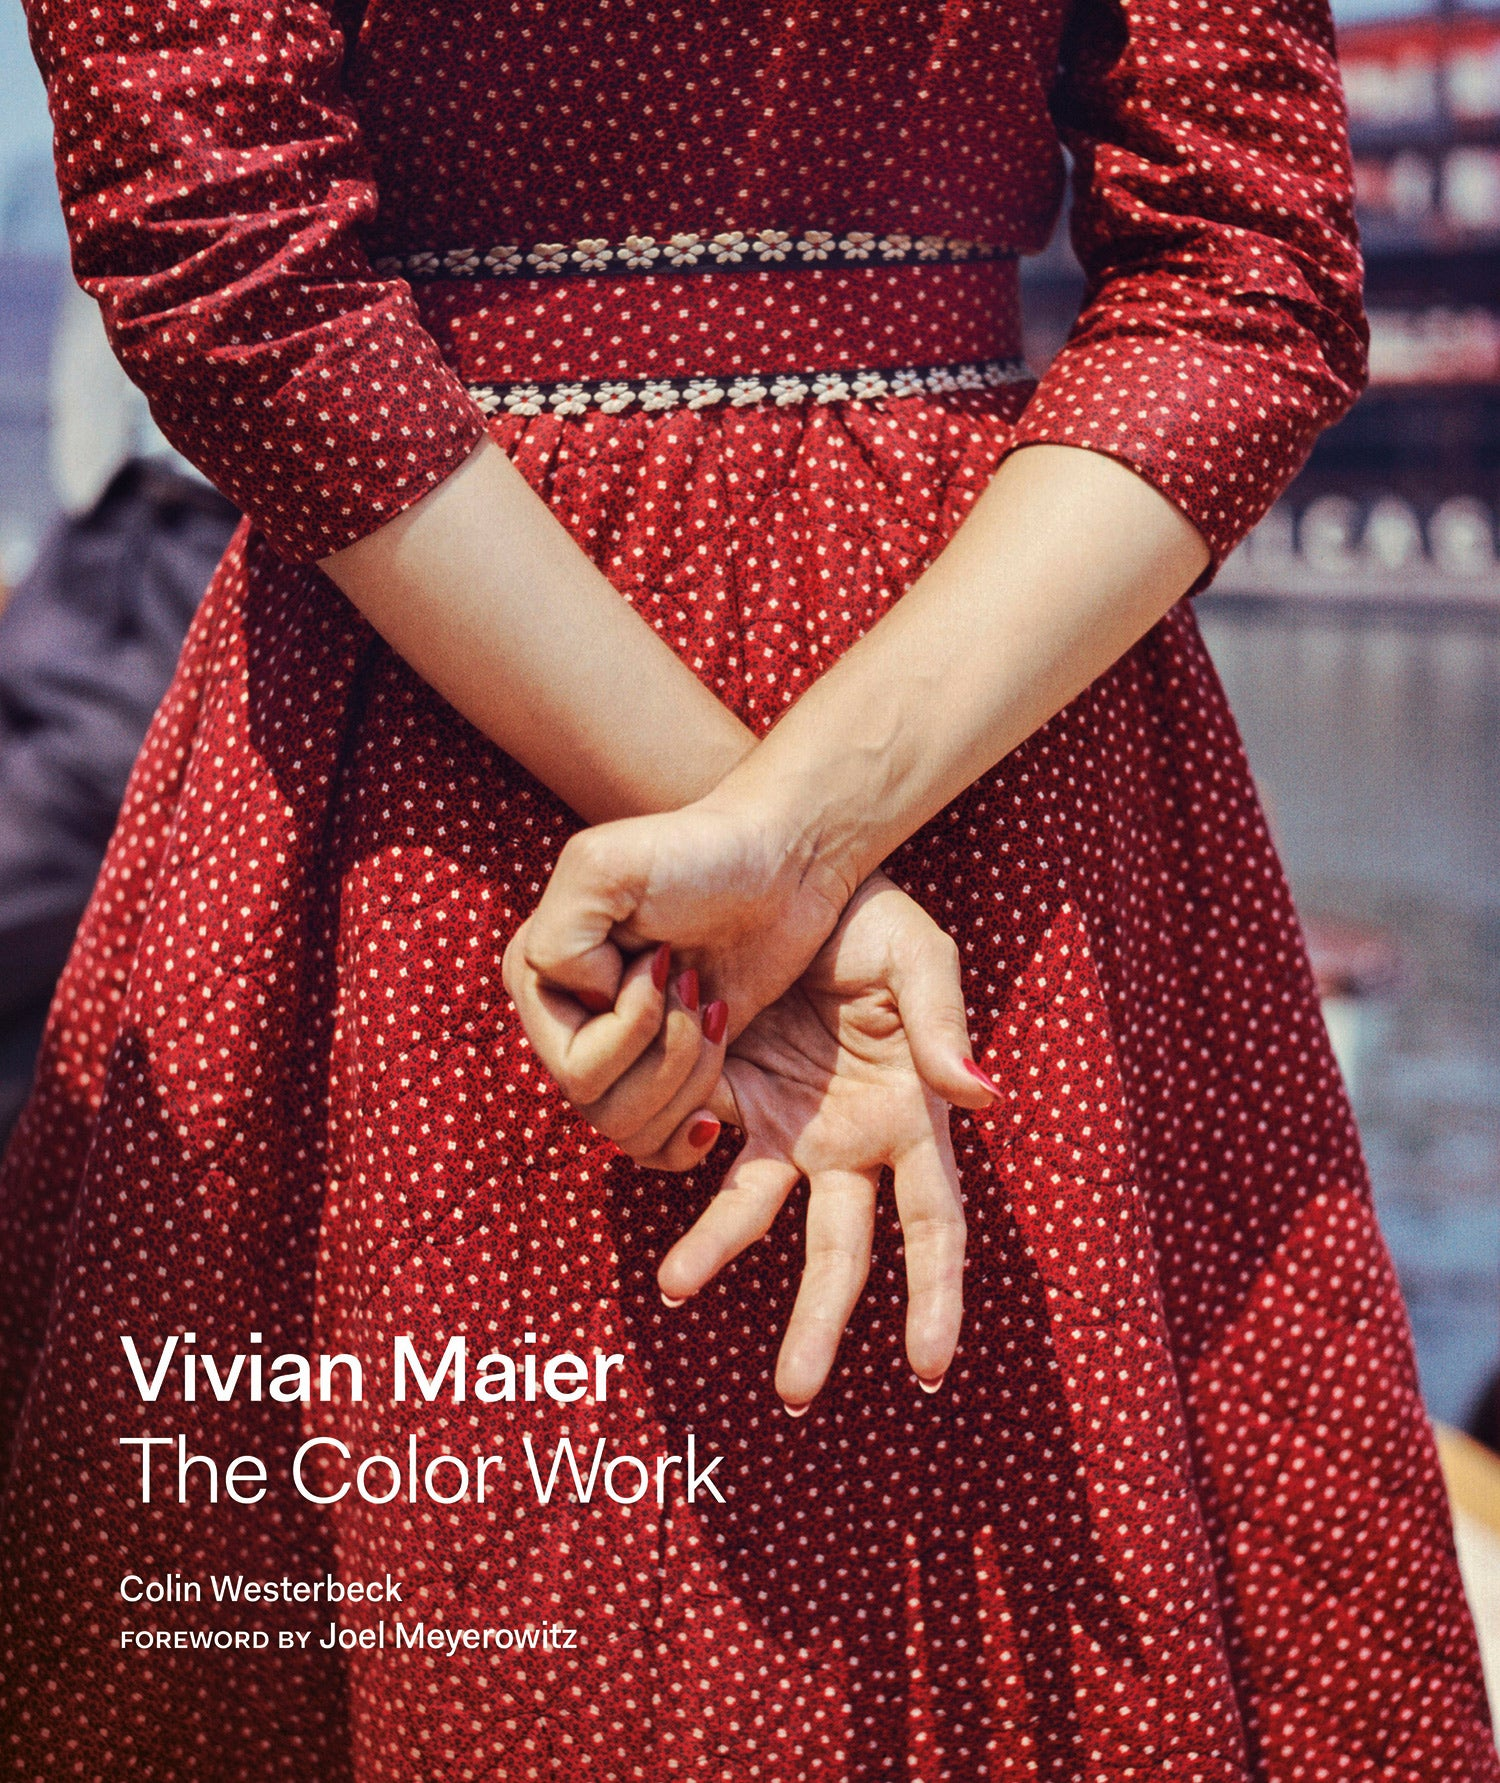 Vivian Maier: The Color Work book cover